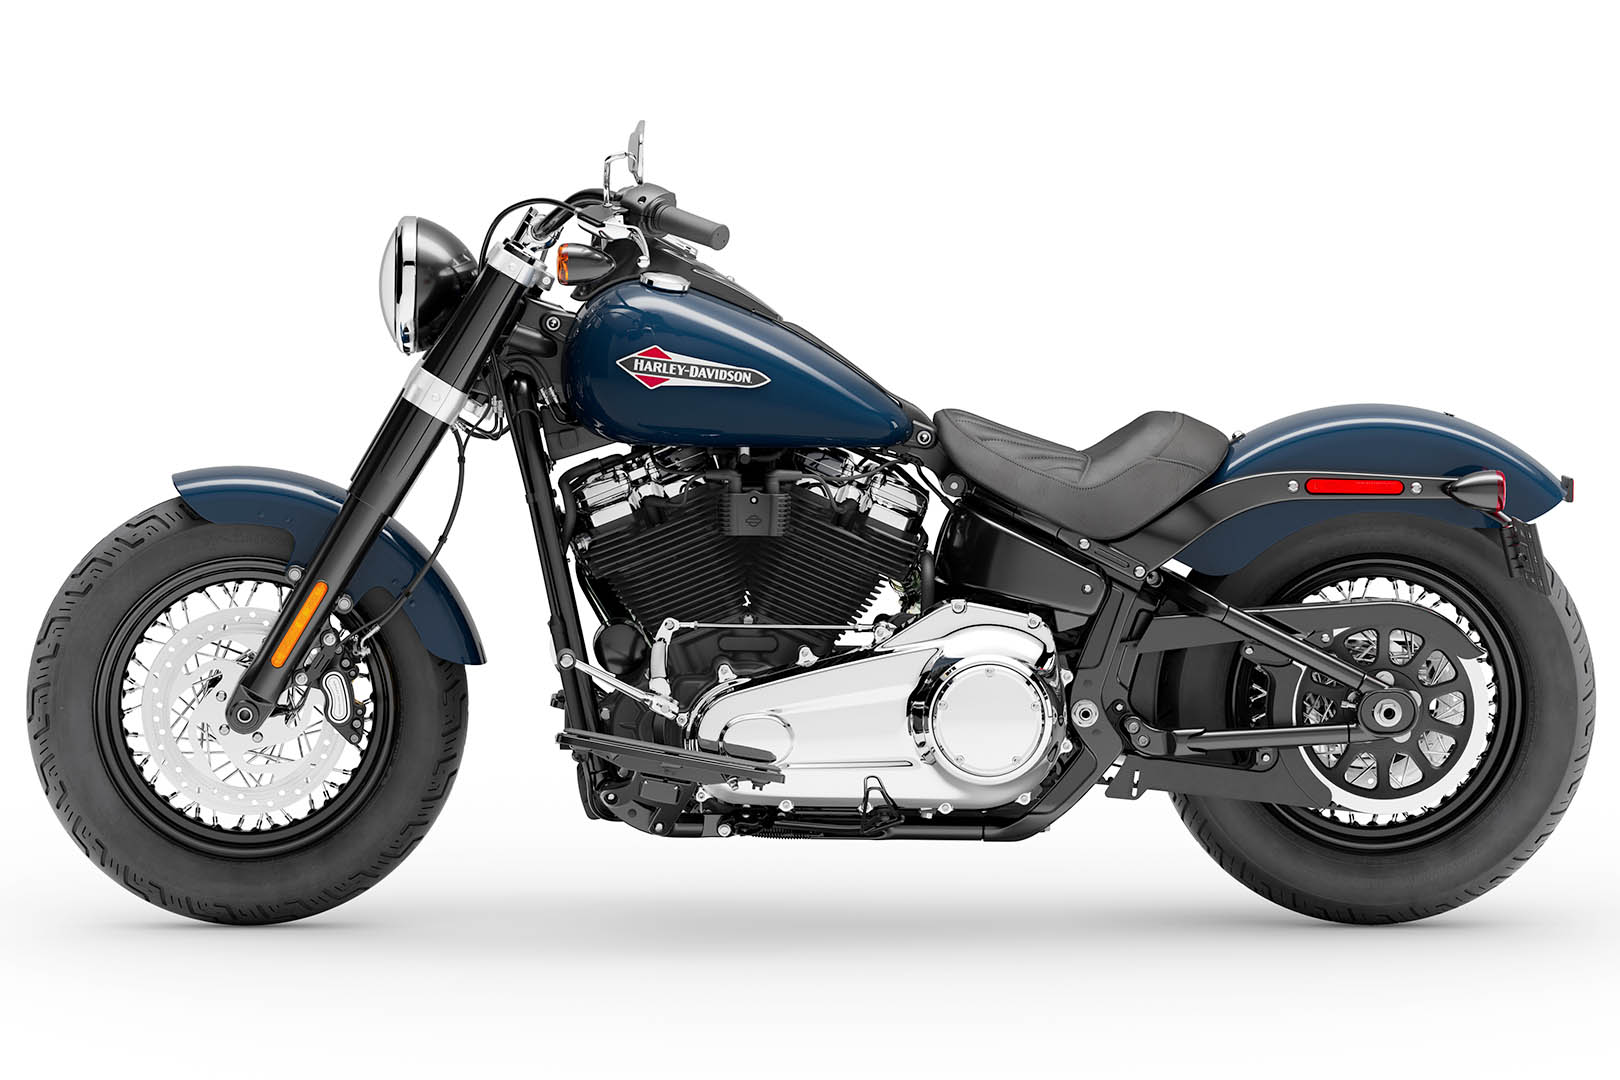 2020 Harley Softail Slim buyers guide